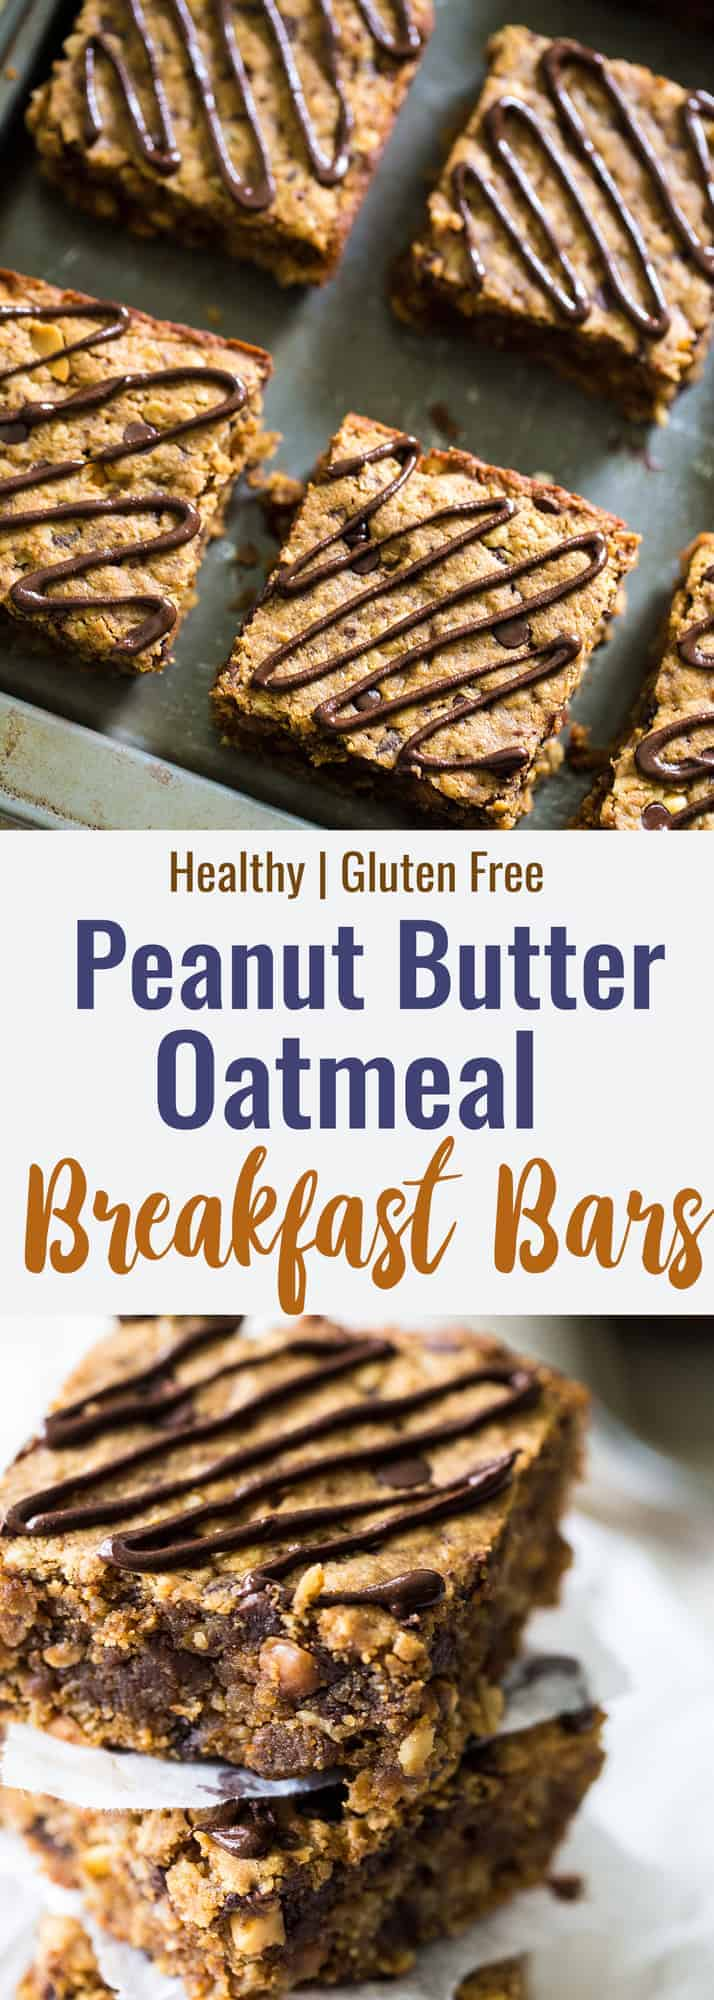 Healthy Breakfast Bars collage photo